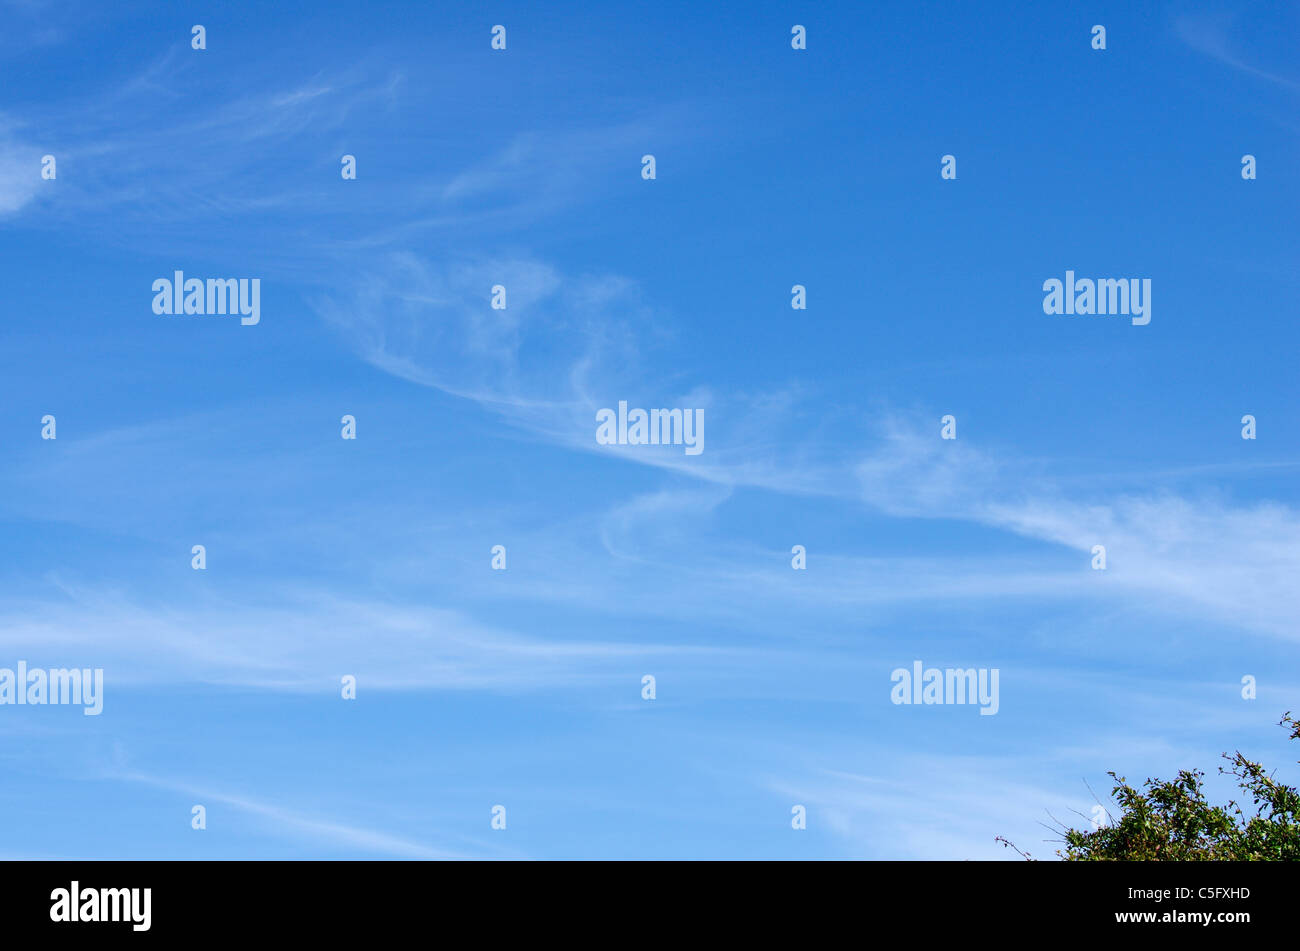 Cirro-stratus with a lingering cirrus uncinus, the air is now more moist with thickening cloud and rain to follow. Stock Photo